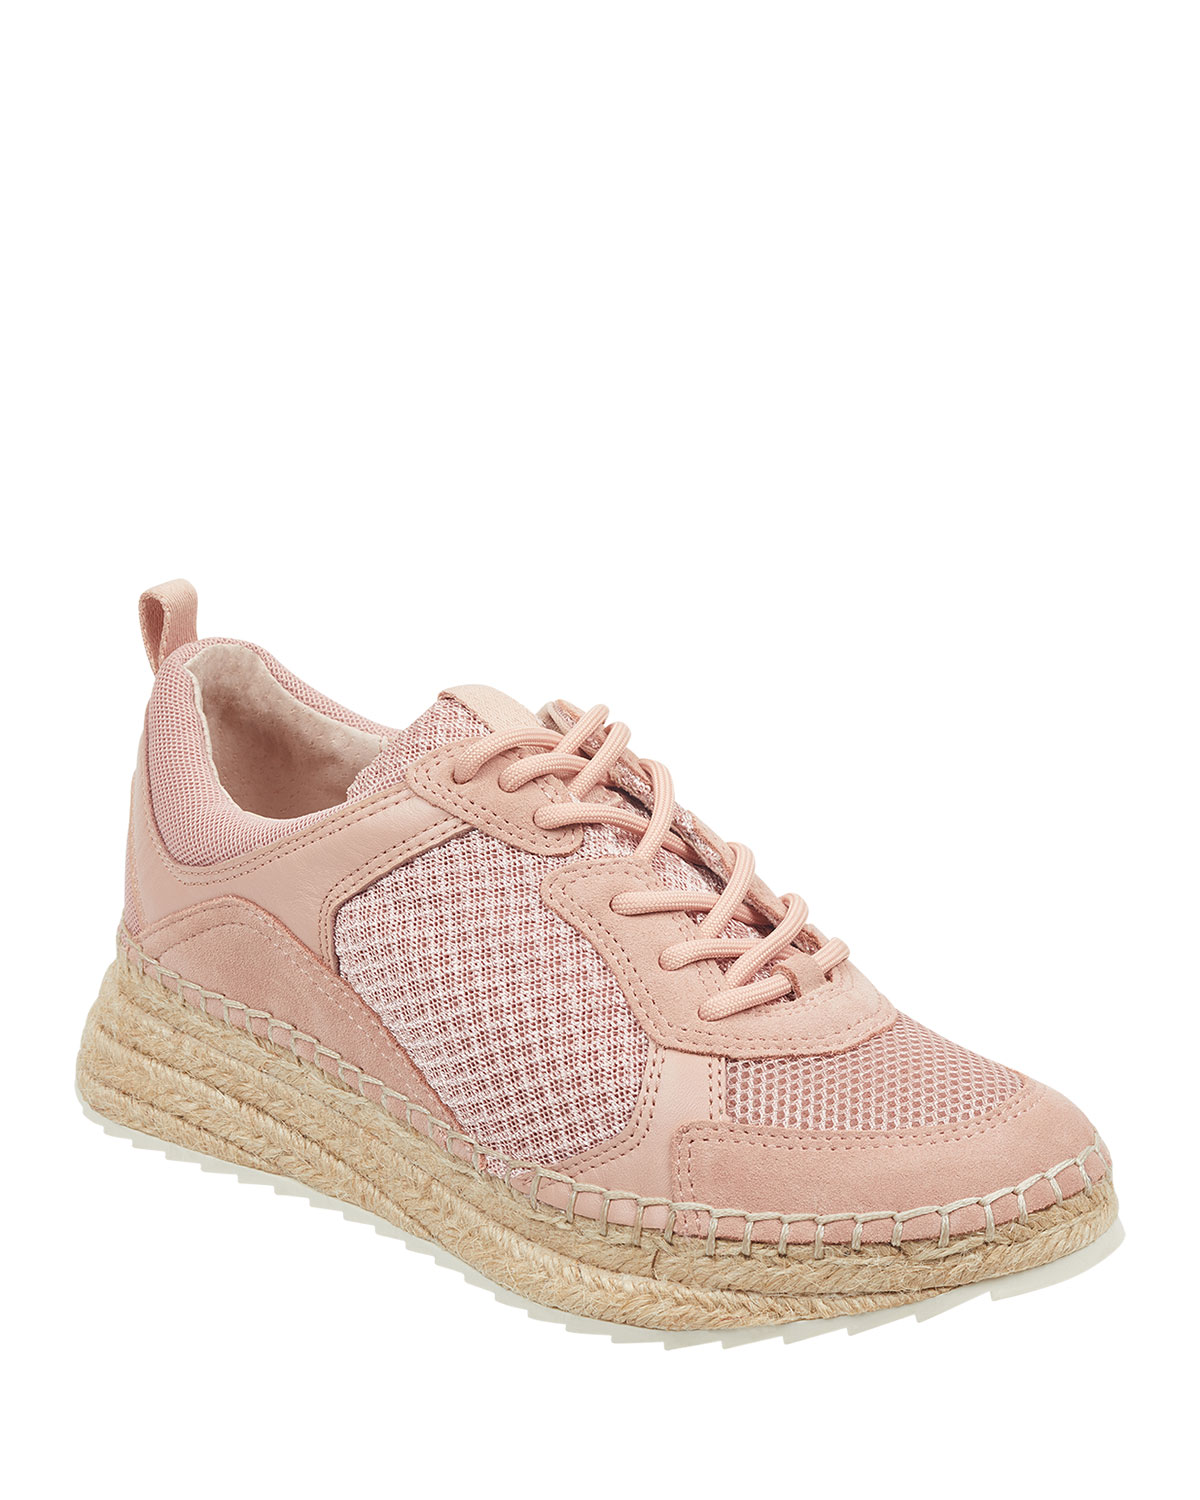 Janette 3 Mixed Espadrille Sneakers